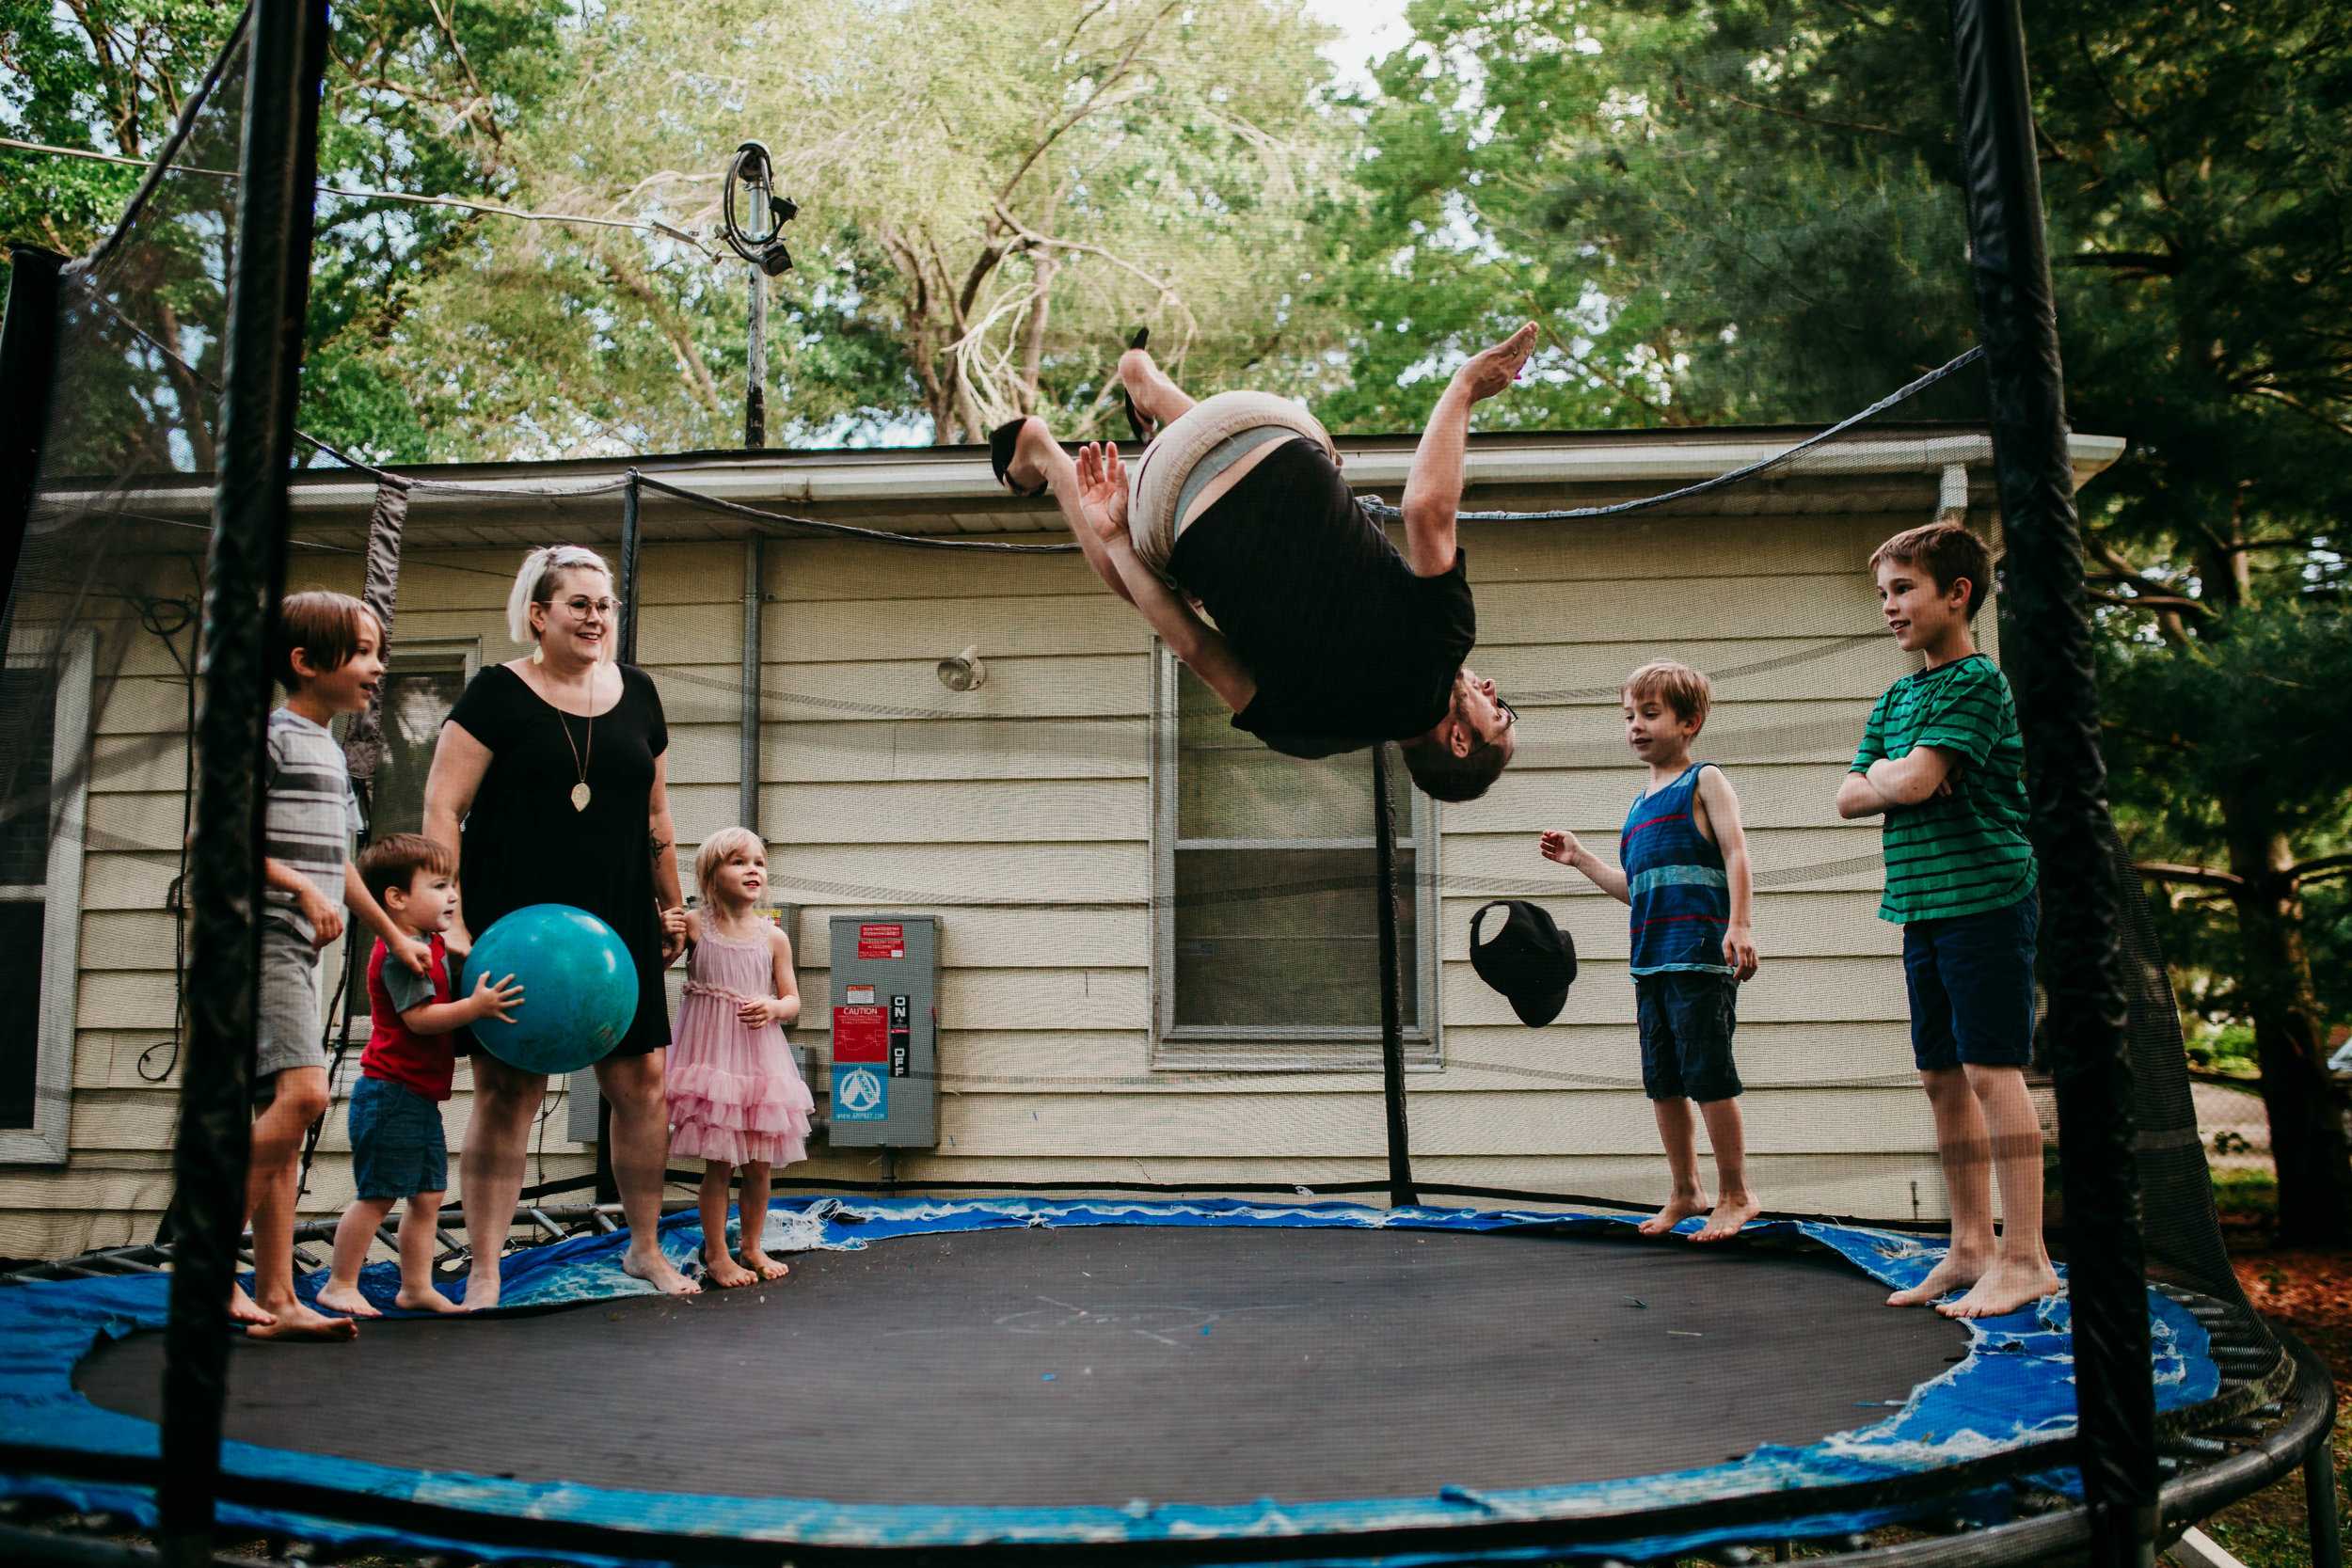 Watching dad jumping on the trampoline.   The Carter Family : Summer in the Backyard | Hannahill Photography | Kansas City, MO | Family photography lifestyle photographer | Wedding photographer Durham North Carolina Raleigh | Birth photographer Documentary